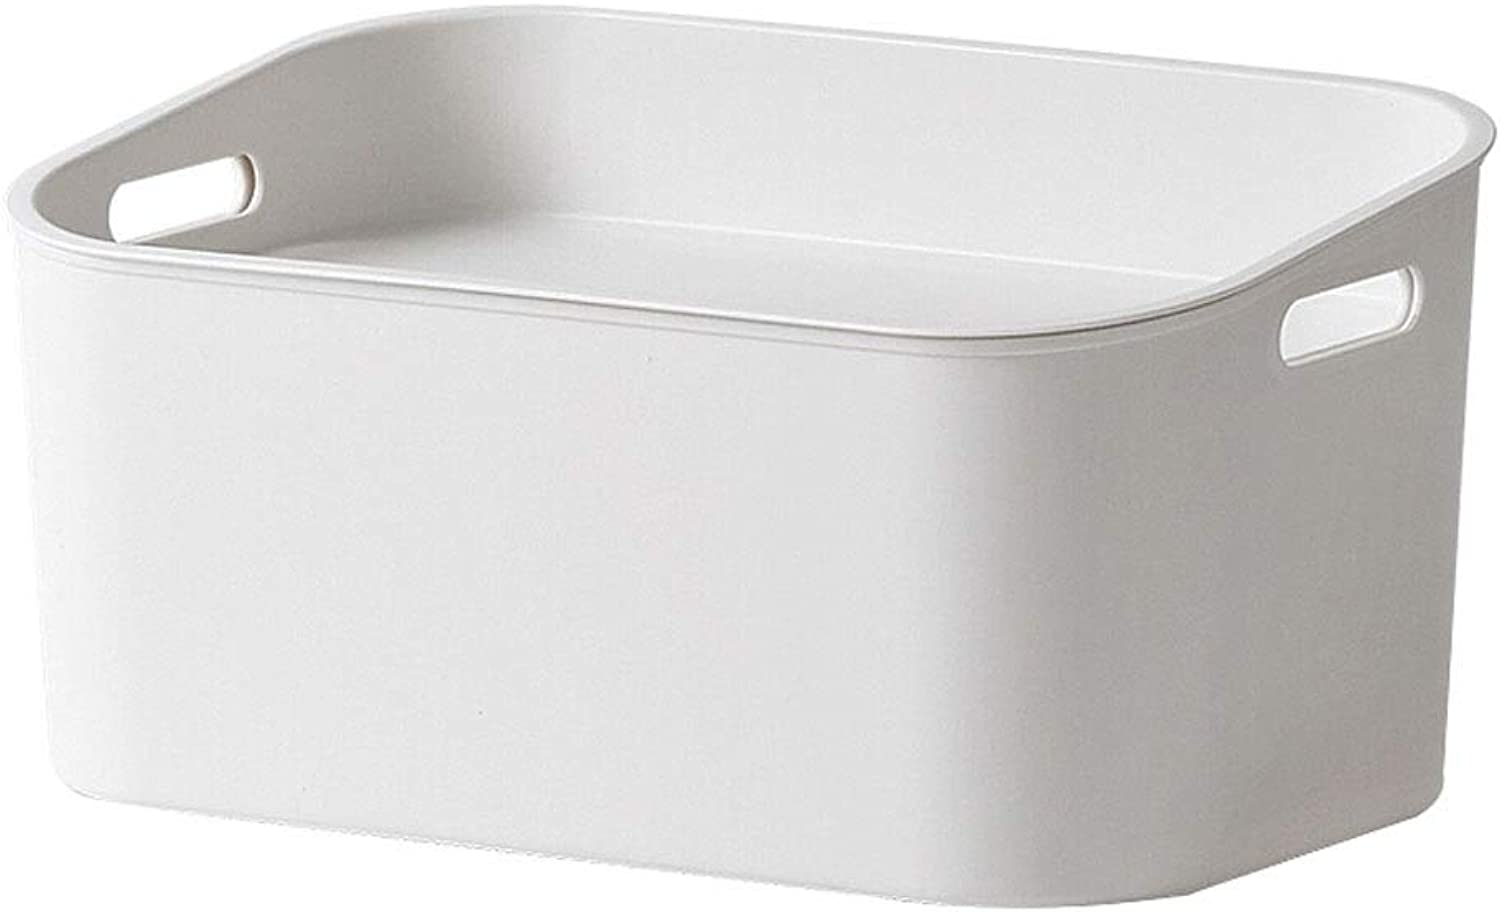 Nordic Style Simple Home Storage Box Plastic Thickening - Handle Design Storage Box Reasonable Use of Storage Space (color   White, Size   M)